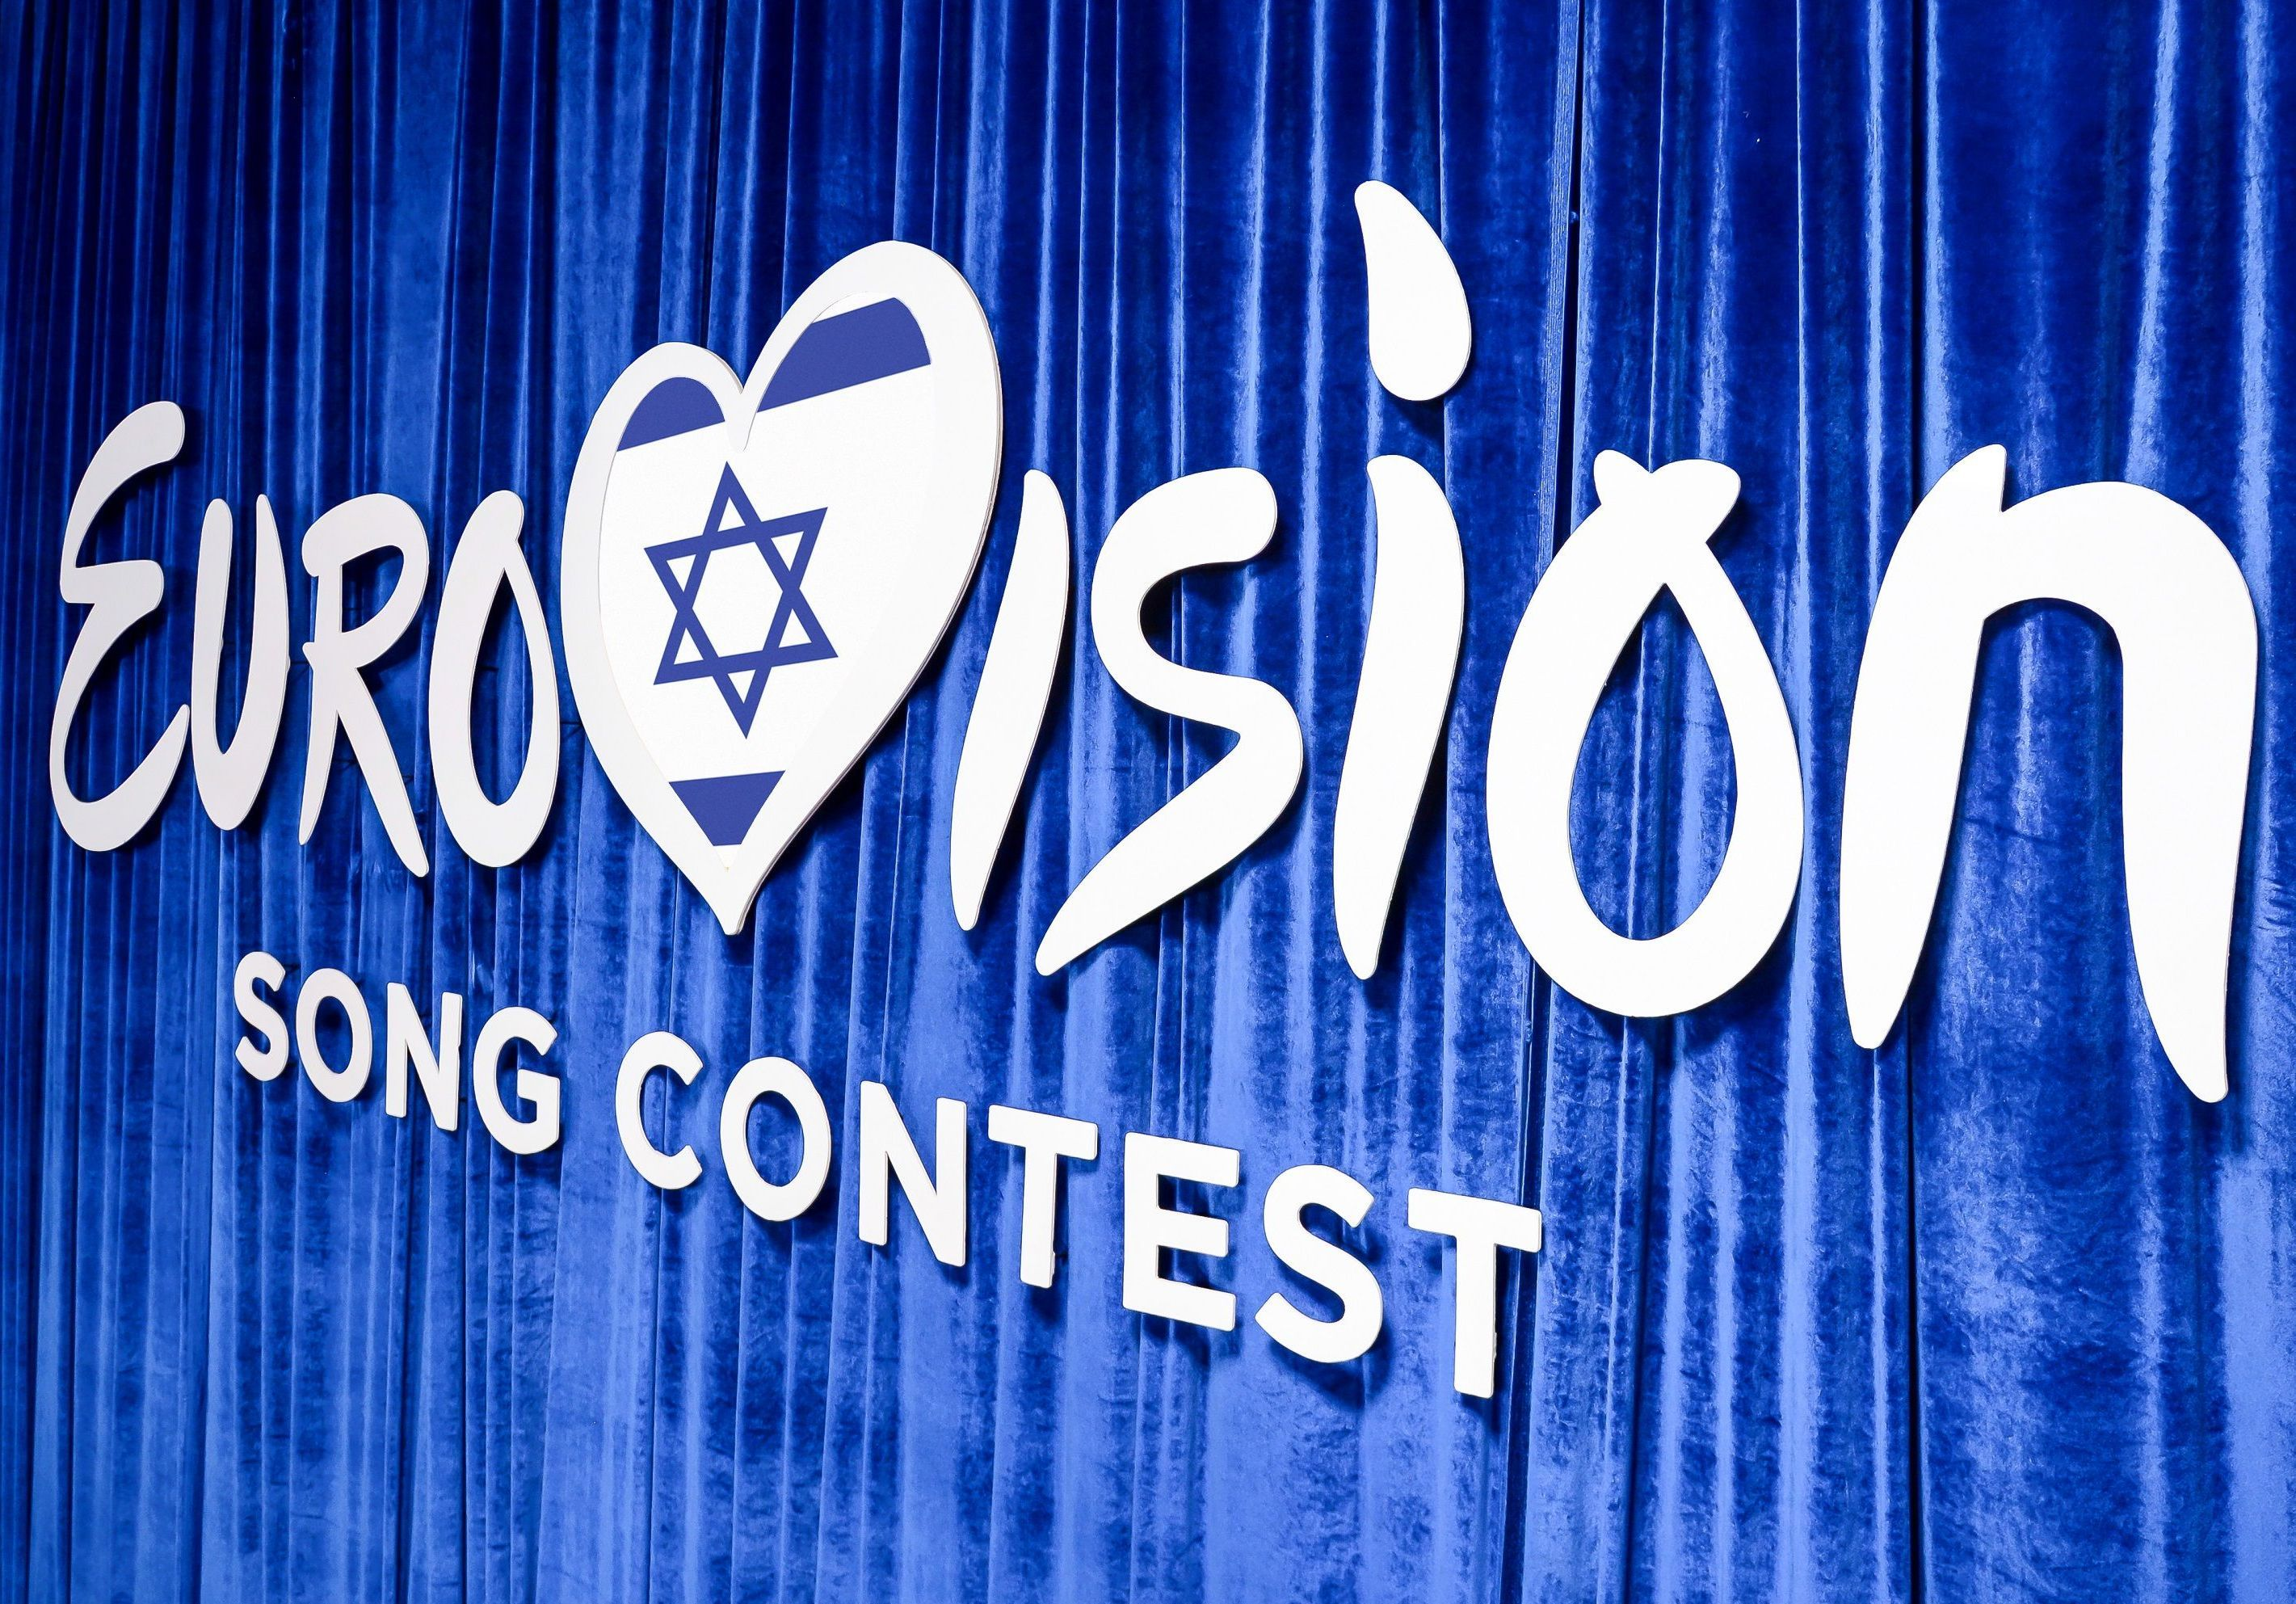 Eurovision 2019 : découvrez quelle superstar internationale chantera lors de la finale